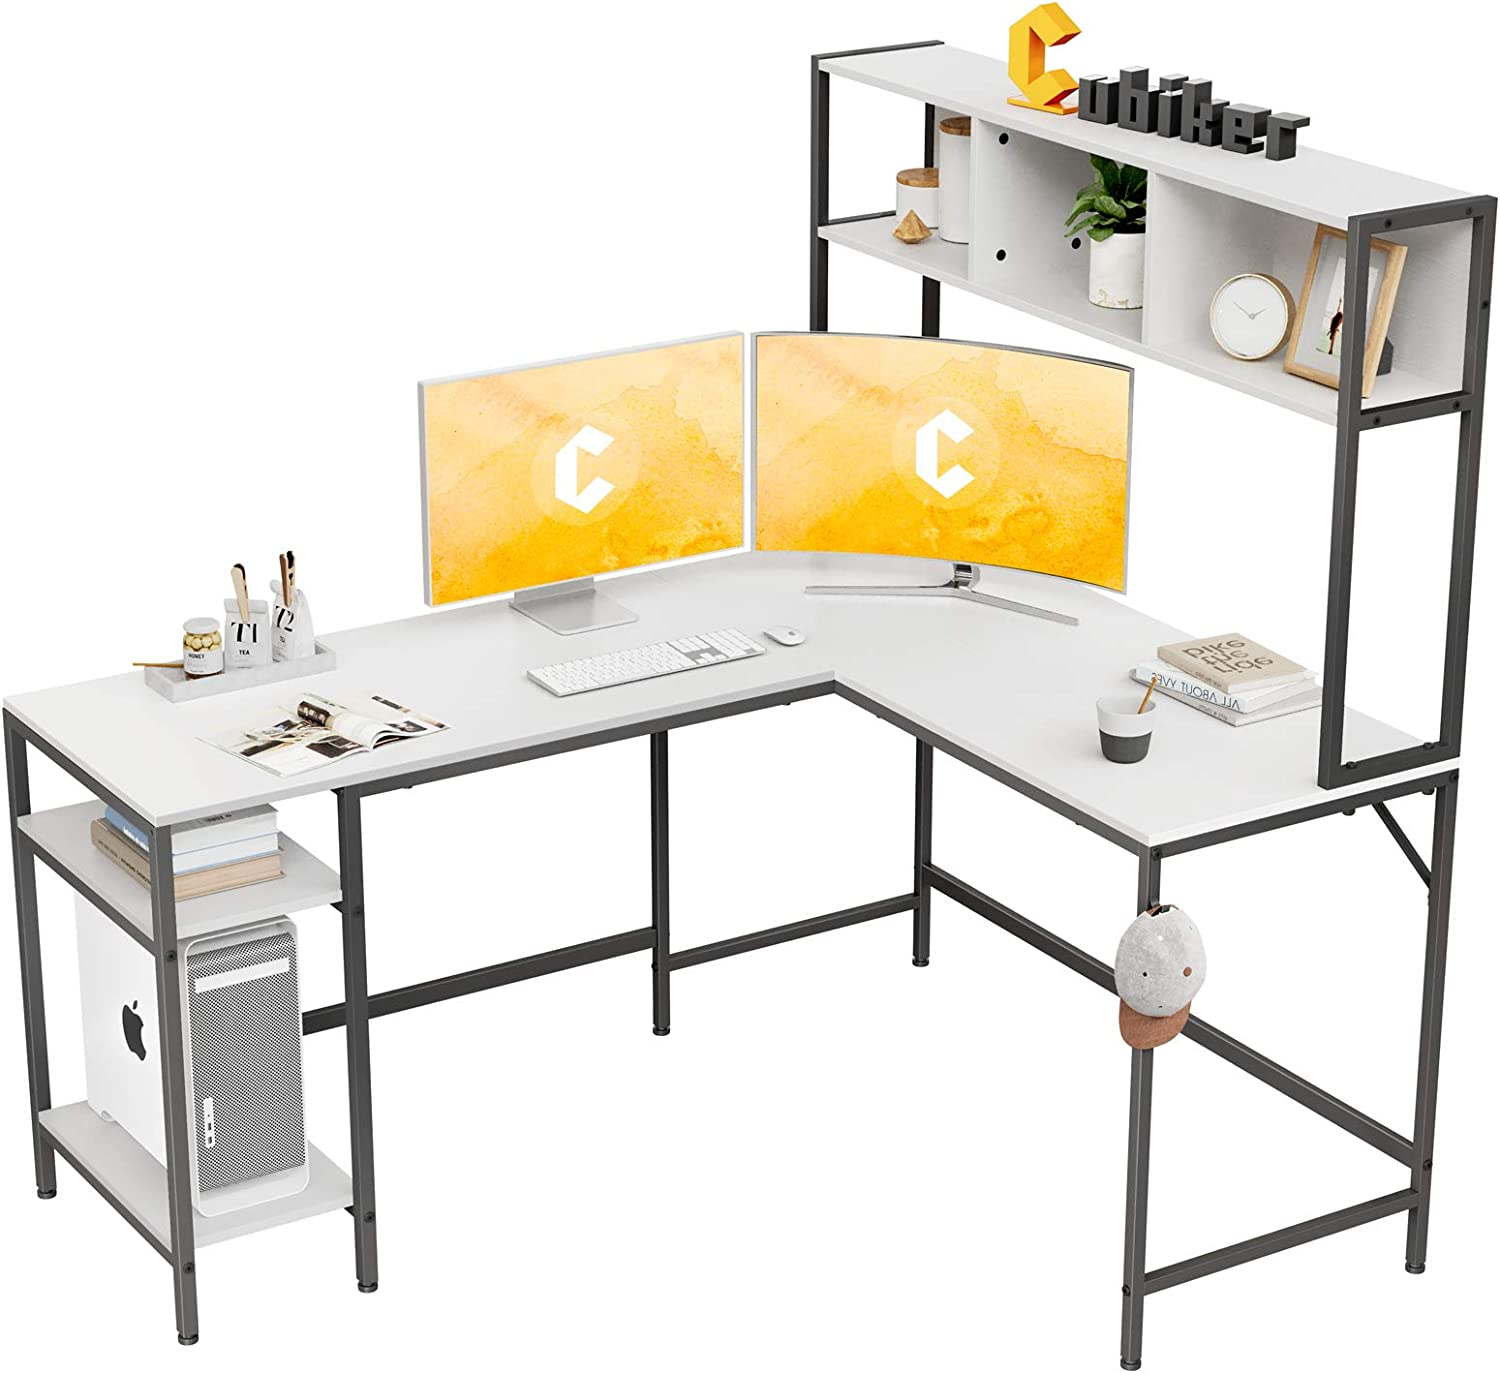 Cubiker L-Shaped Desk with Hutch, 60